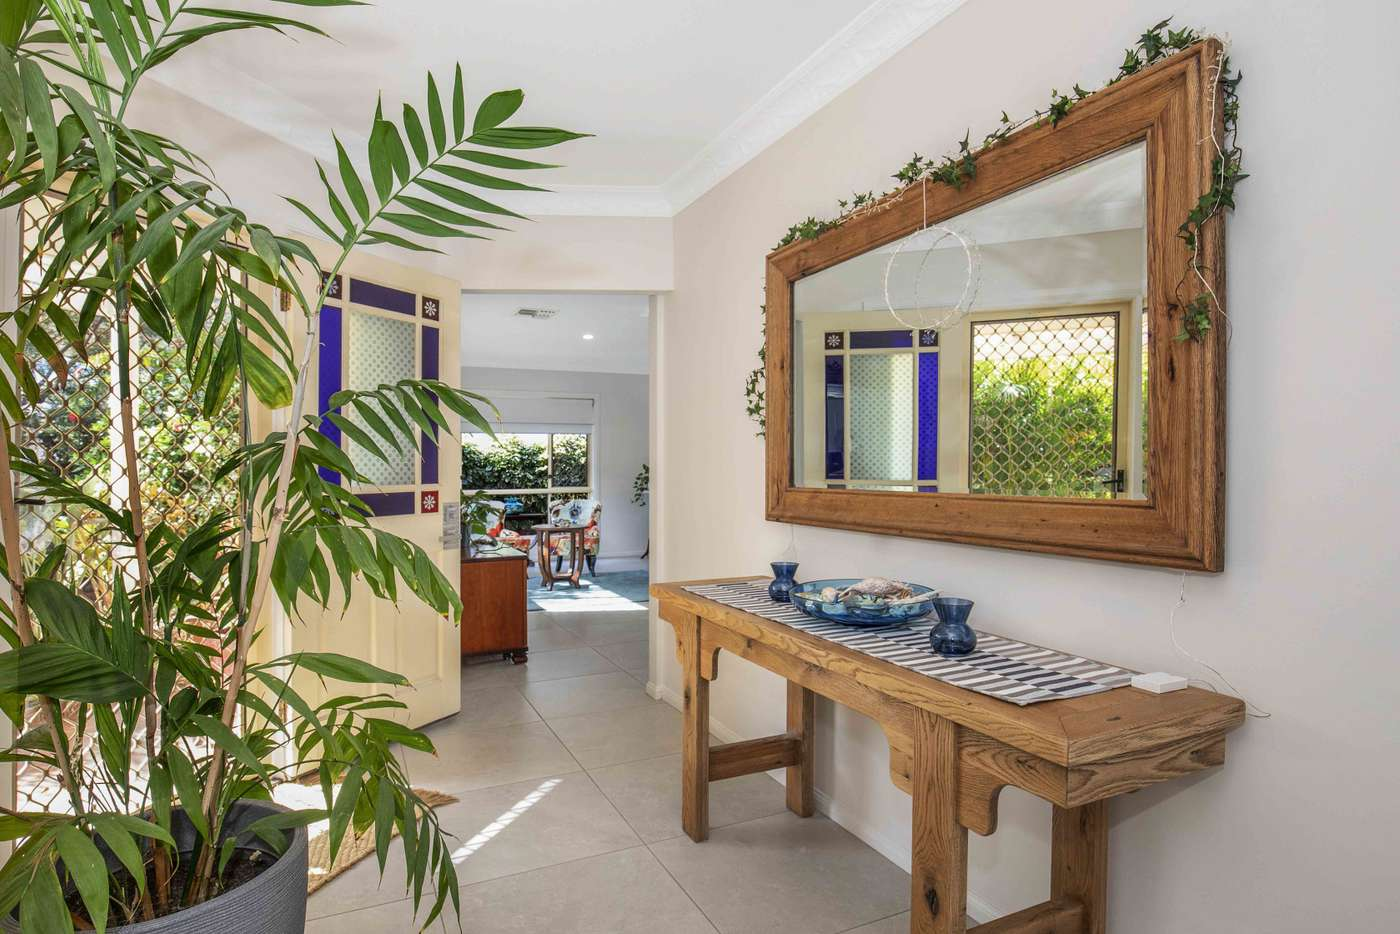 Sixth view of Homely house listing, 53 Albert St, Margate QLD 4019